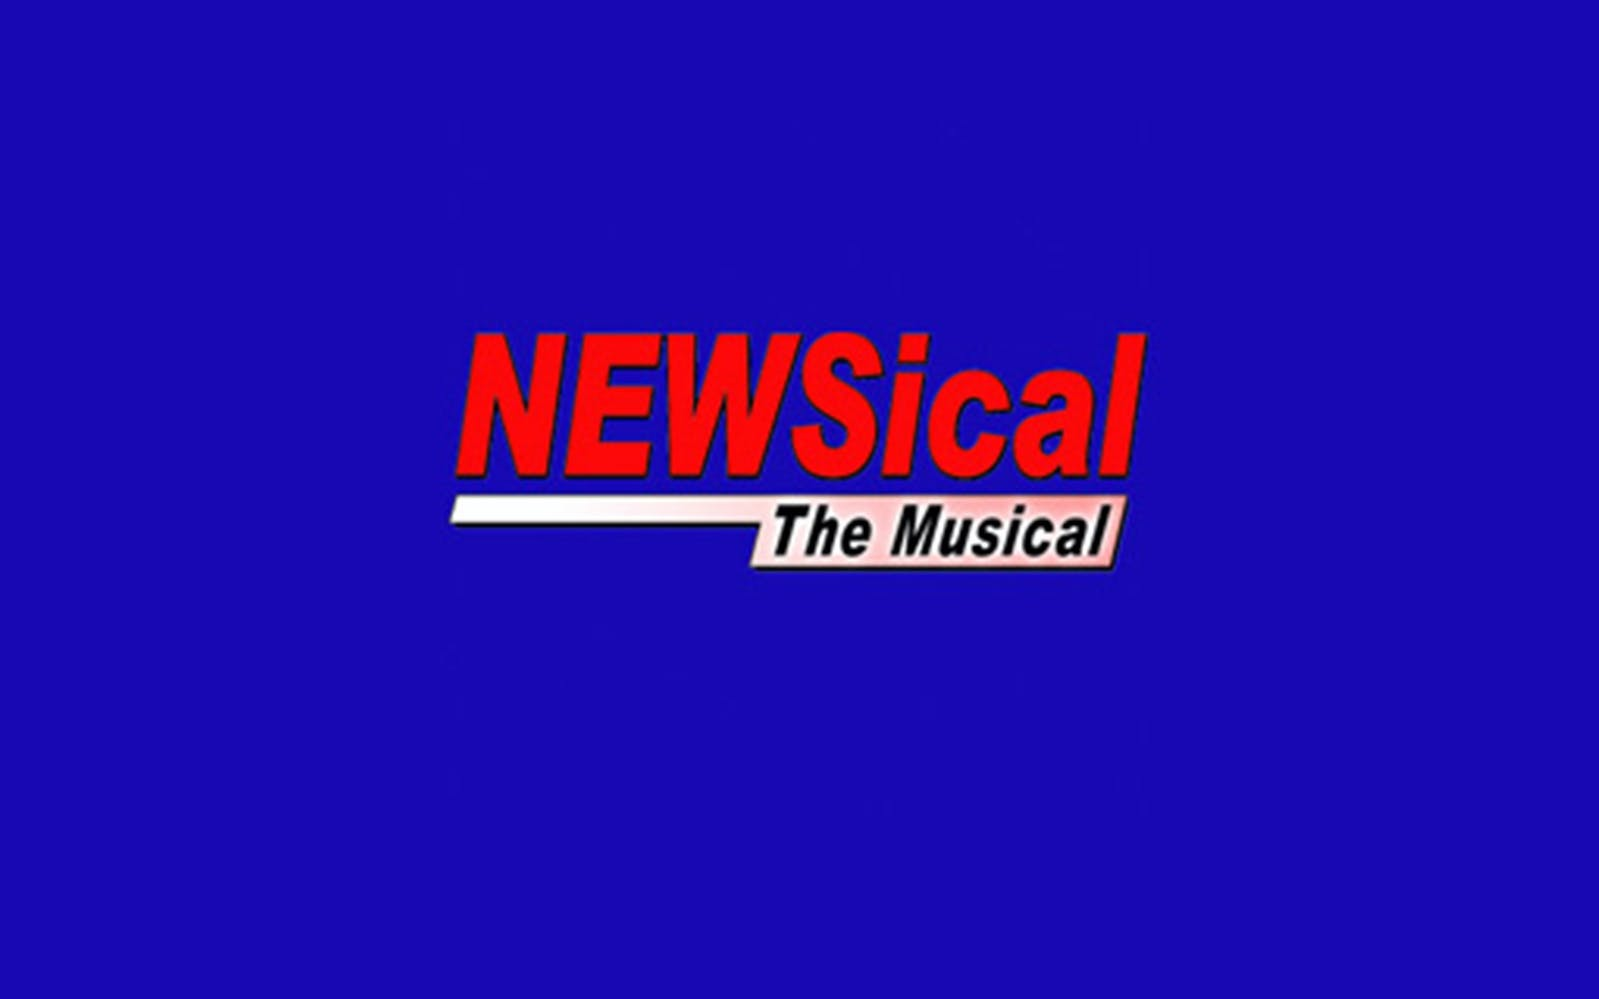 newsical the musical-1